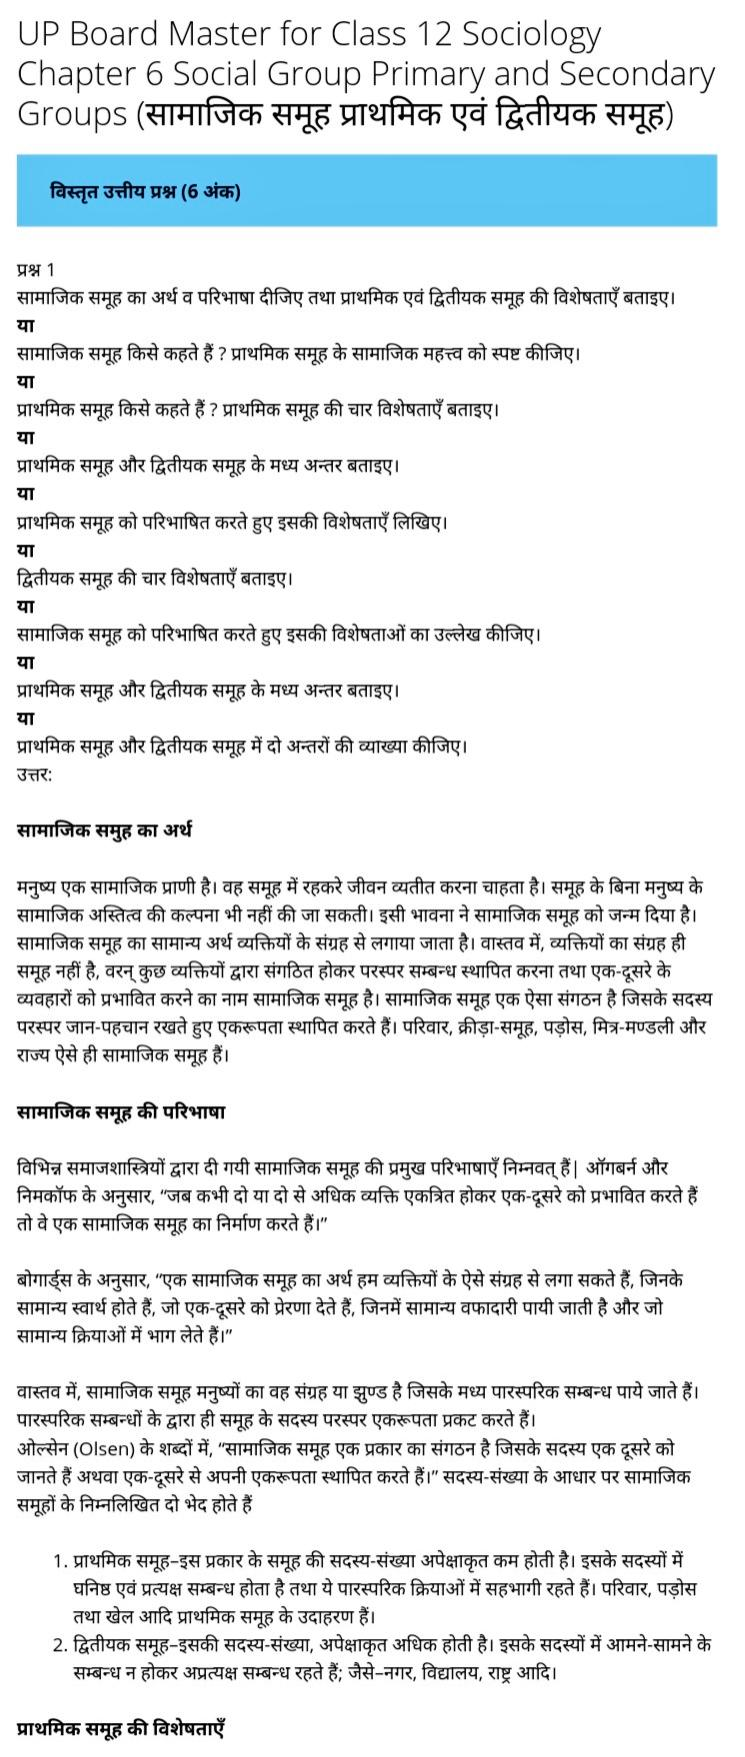 UP Board Solutions for Class 12 Sociology Chapter 6 Social Group Primary and Secondary Groups (सामाजिक समूह प्राथमिक एवं द्वितीयक समूह)